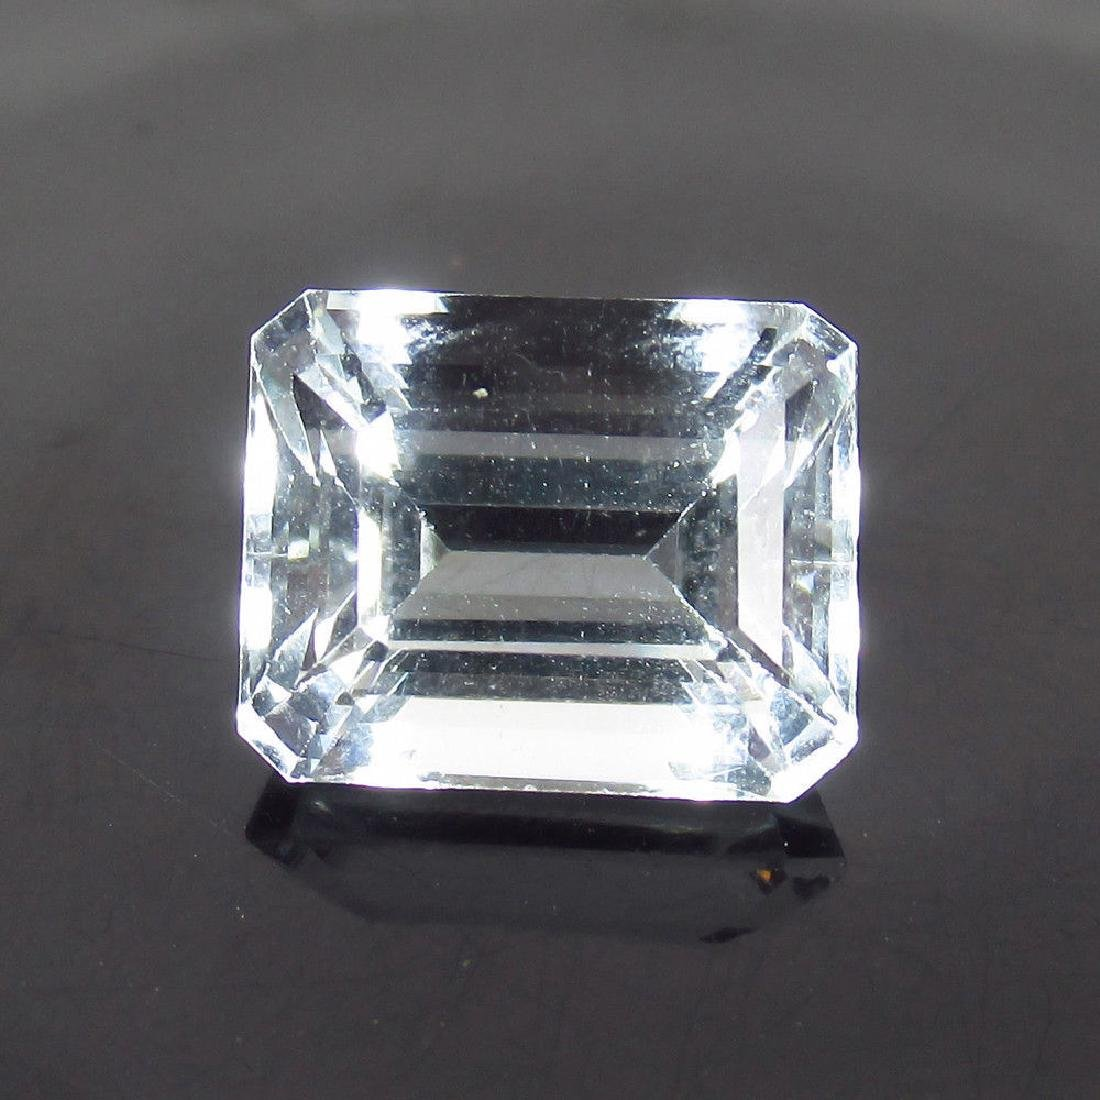 5.25 Ct Genuine Certified Loose White Beryl Ghosonite